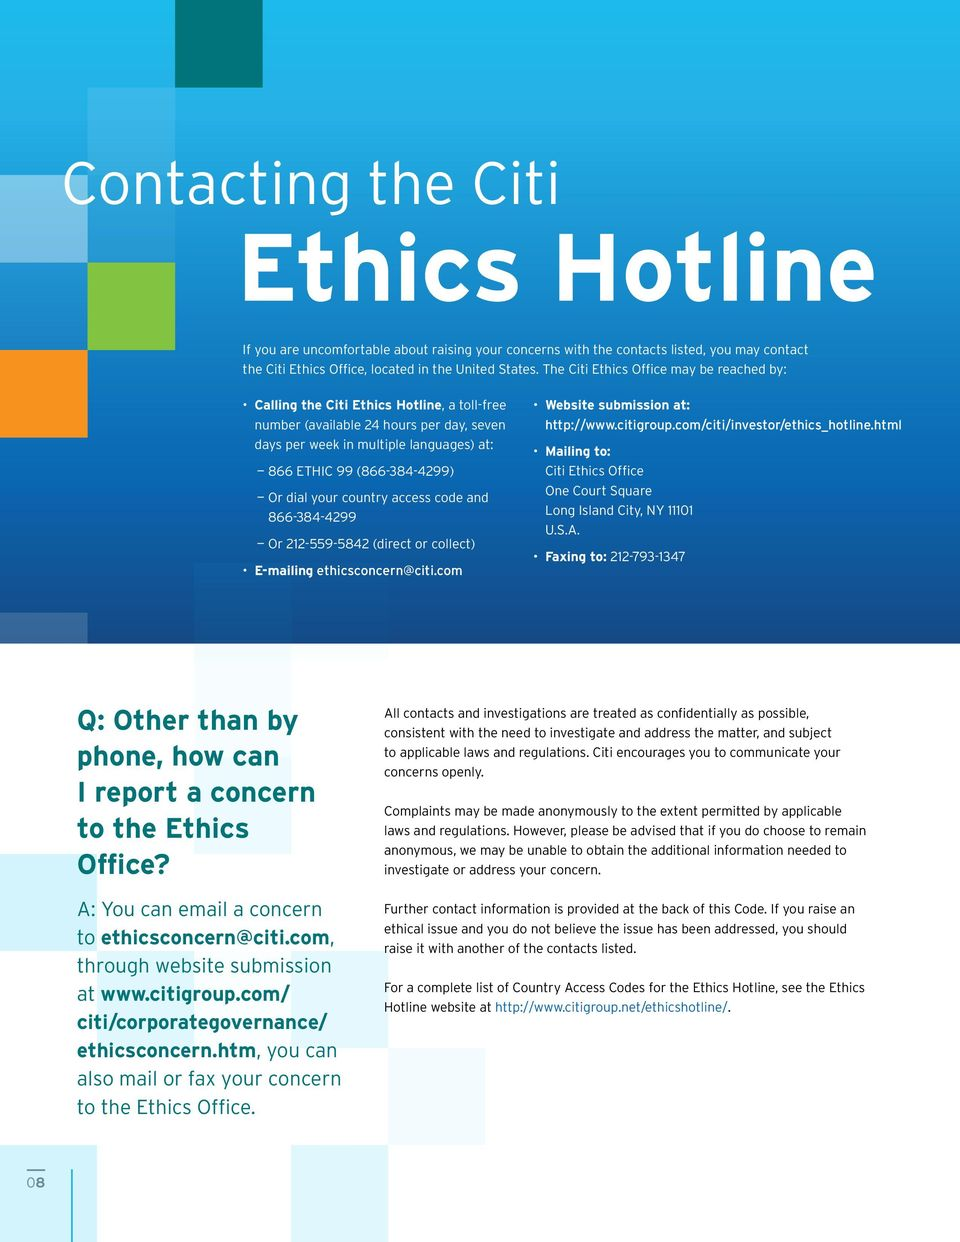 Or dial your country access code and 866-384-4299 Or 212-559-5842 (direct or collect) E-mailing ethicsconcern@citi.com Website submission at: http://www.citigroup.com/citi/investor/ethics_hotline.